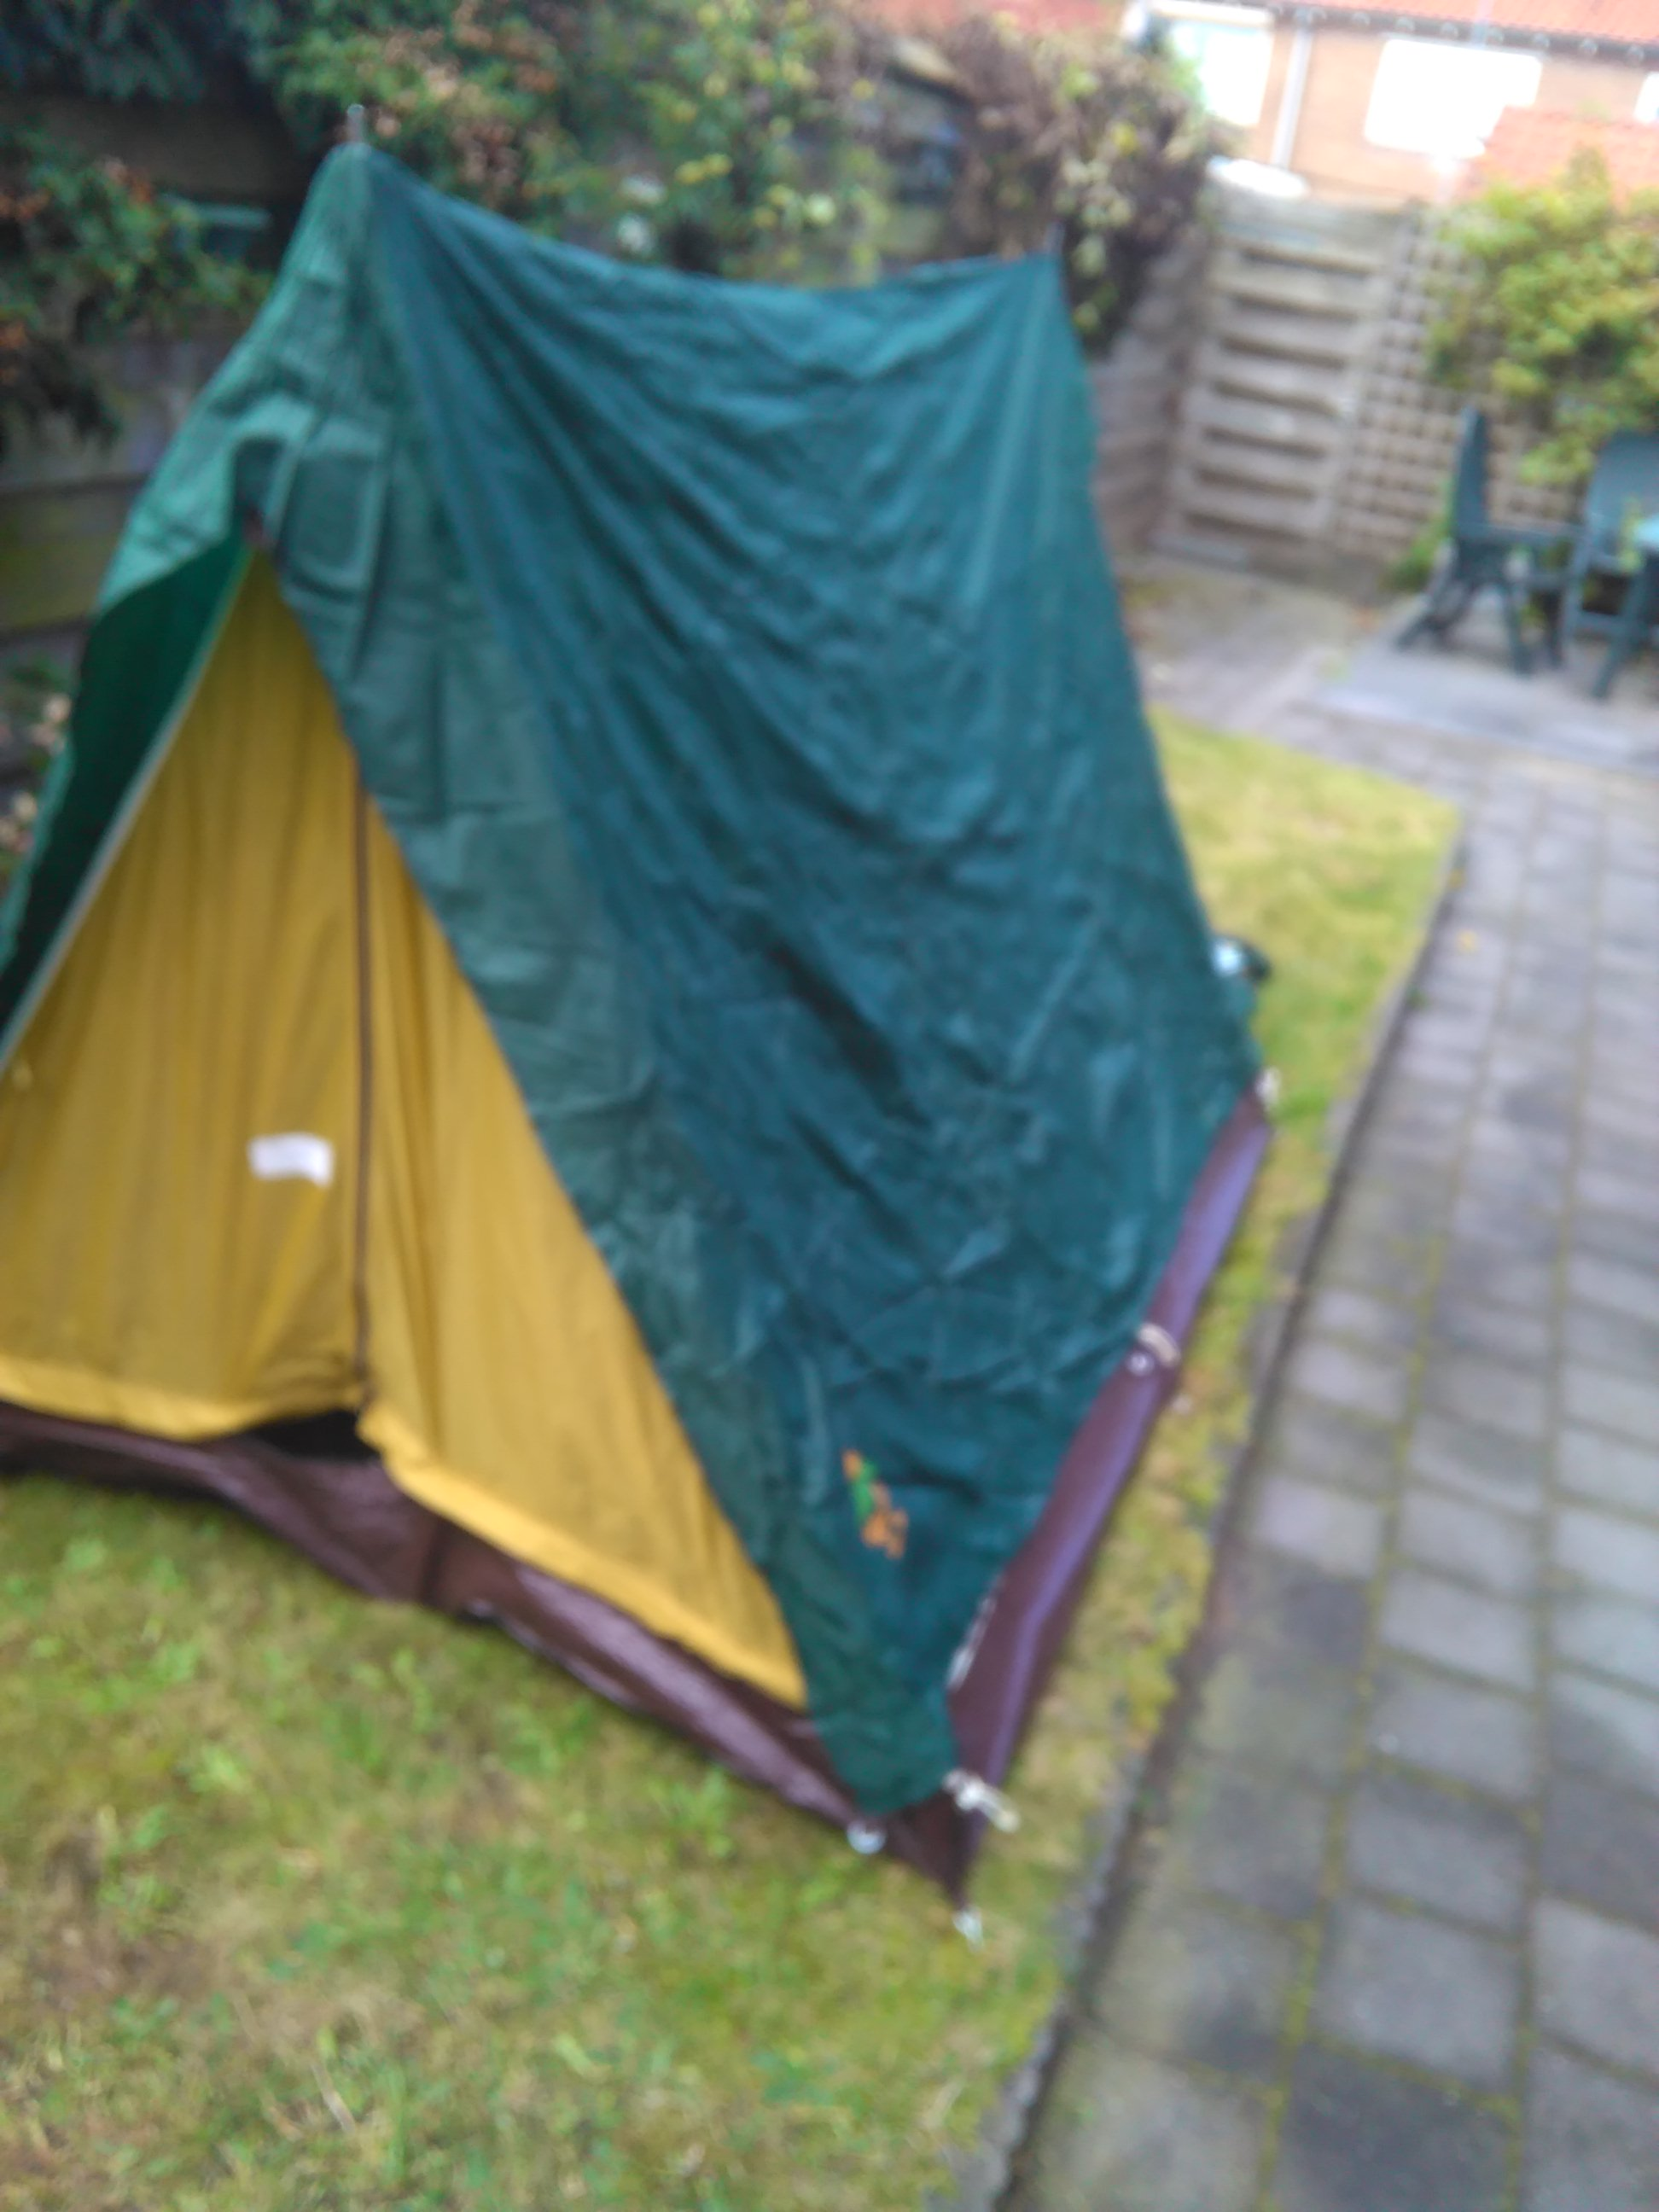 Partially Erected Tent